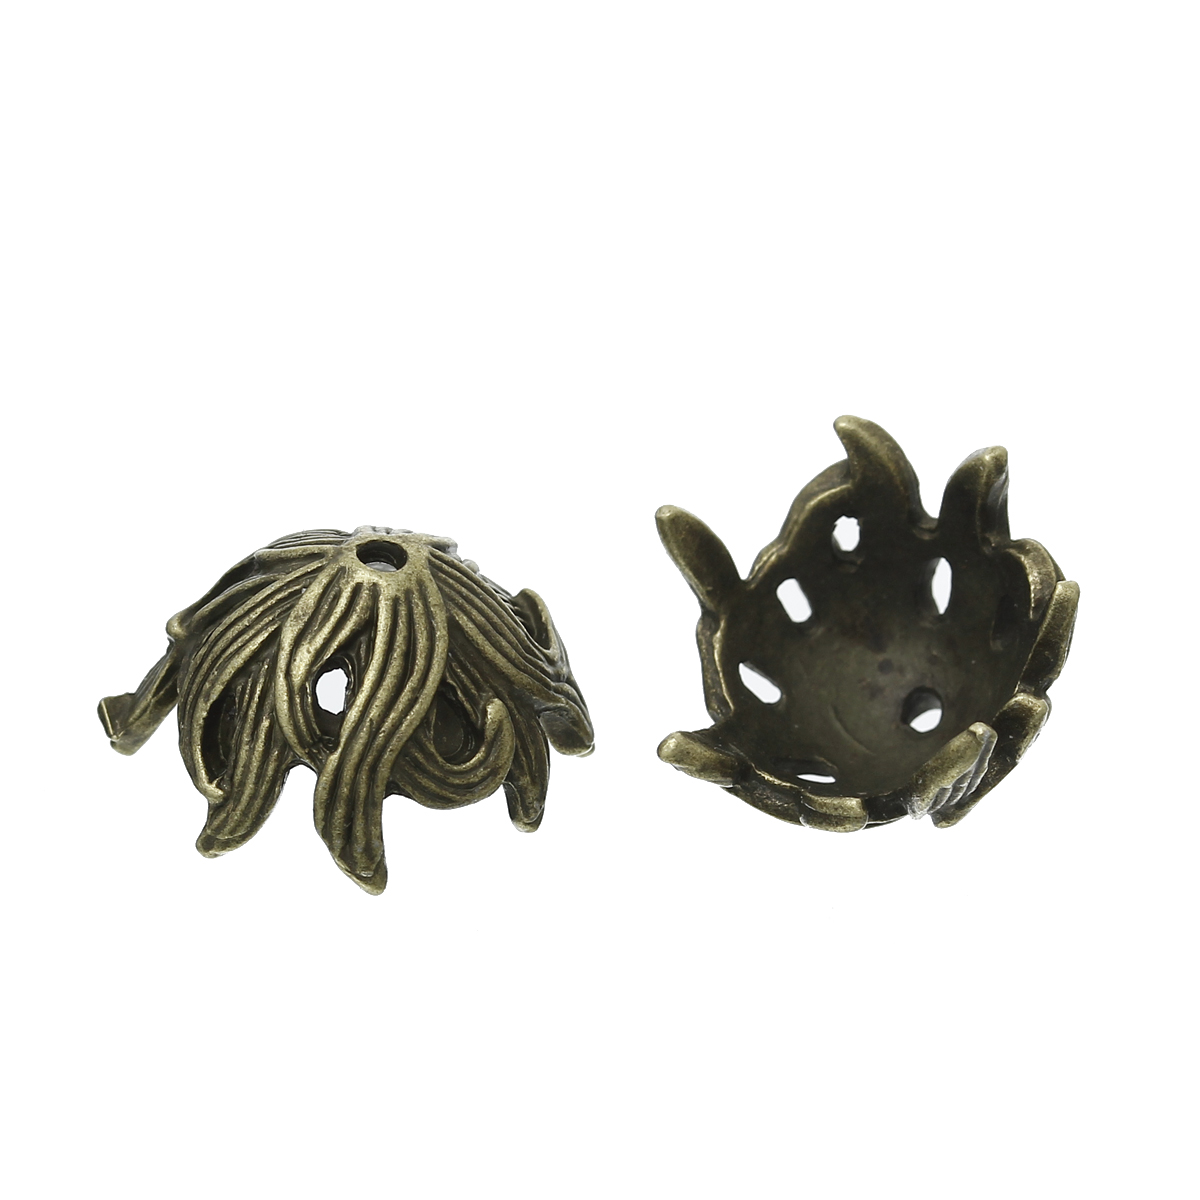 Zinc metal alloy Beads Caps Flower Antique Bronze (Fits 16mm Beads) 17mm( 5/8) x 15mm( 5/8), 5 PCs newZinc metal alloy Beads Caps Flower Antique Bronze (Fits 16mm Beads) 17mm( 5/8) x 15mm( 5/8), 5 PCs new